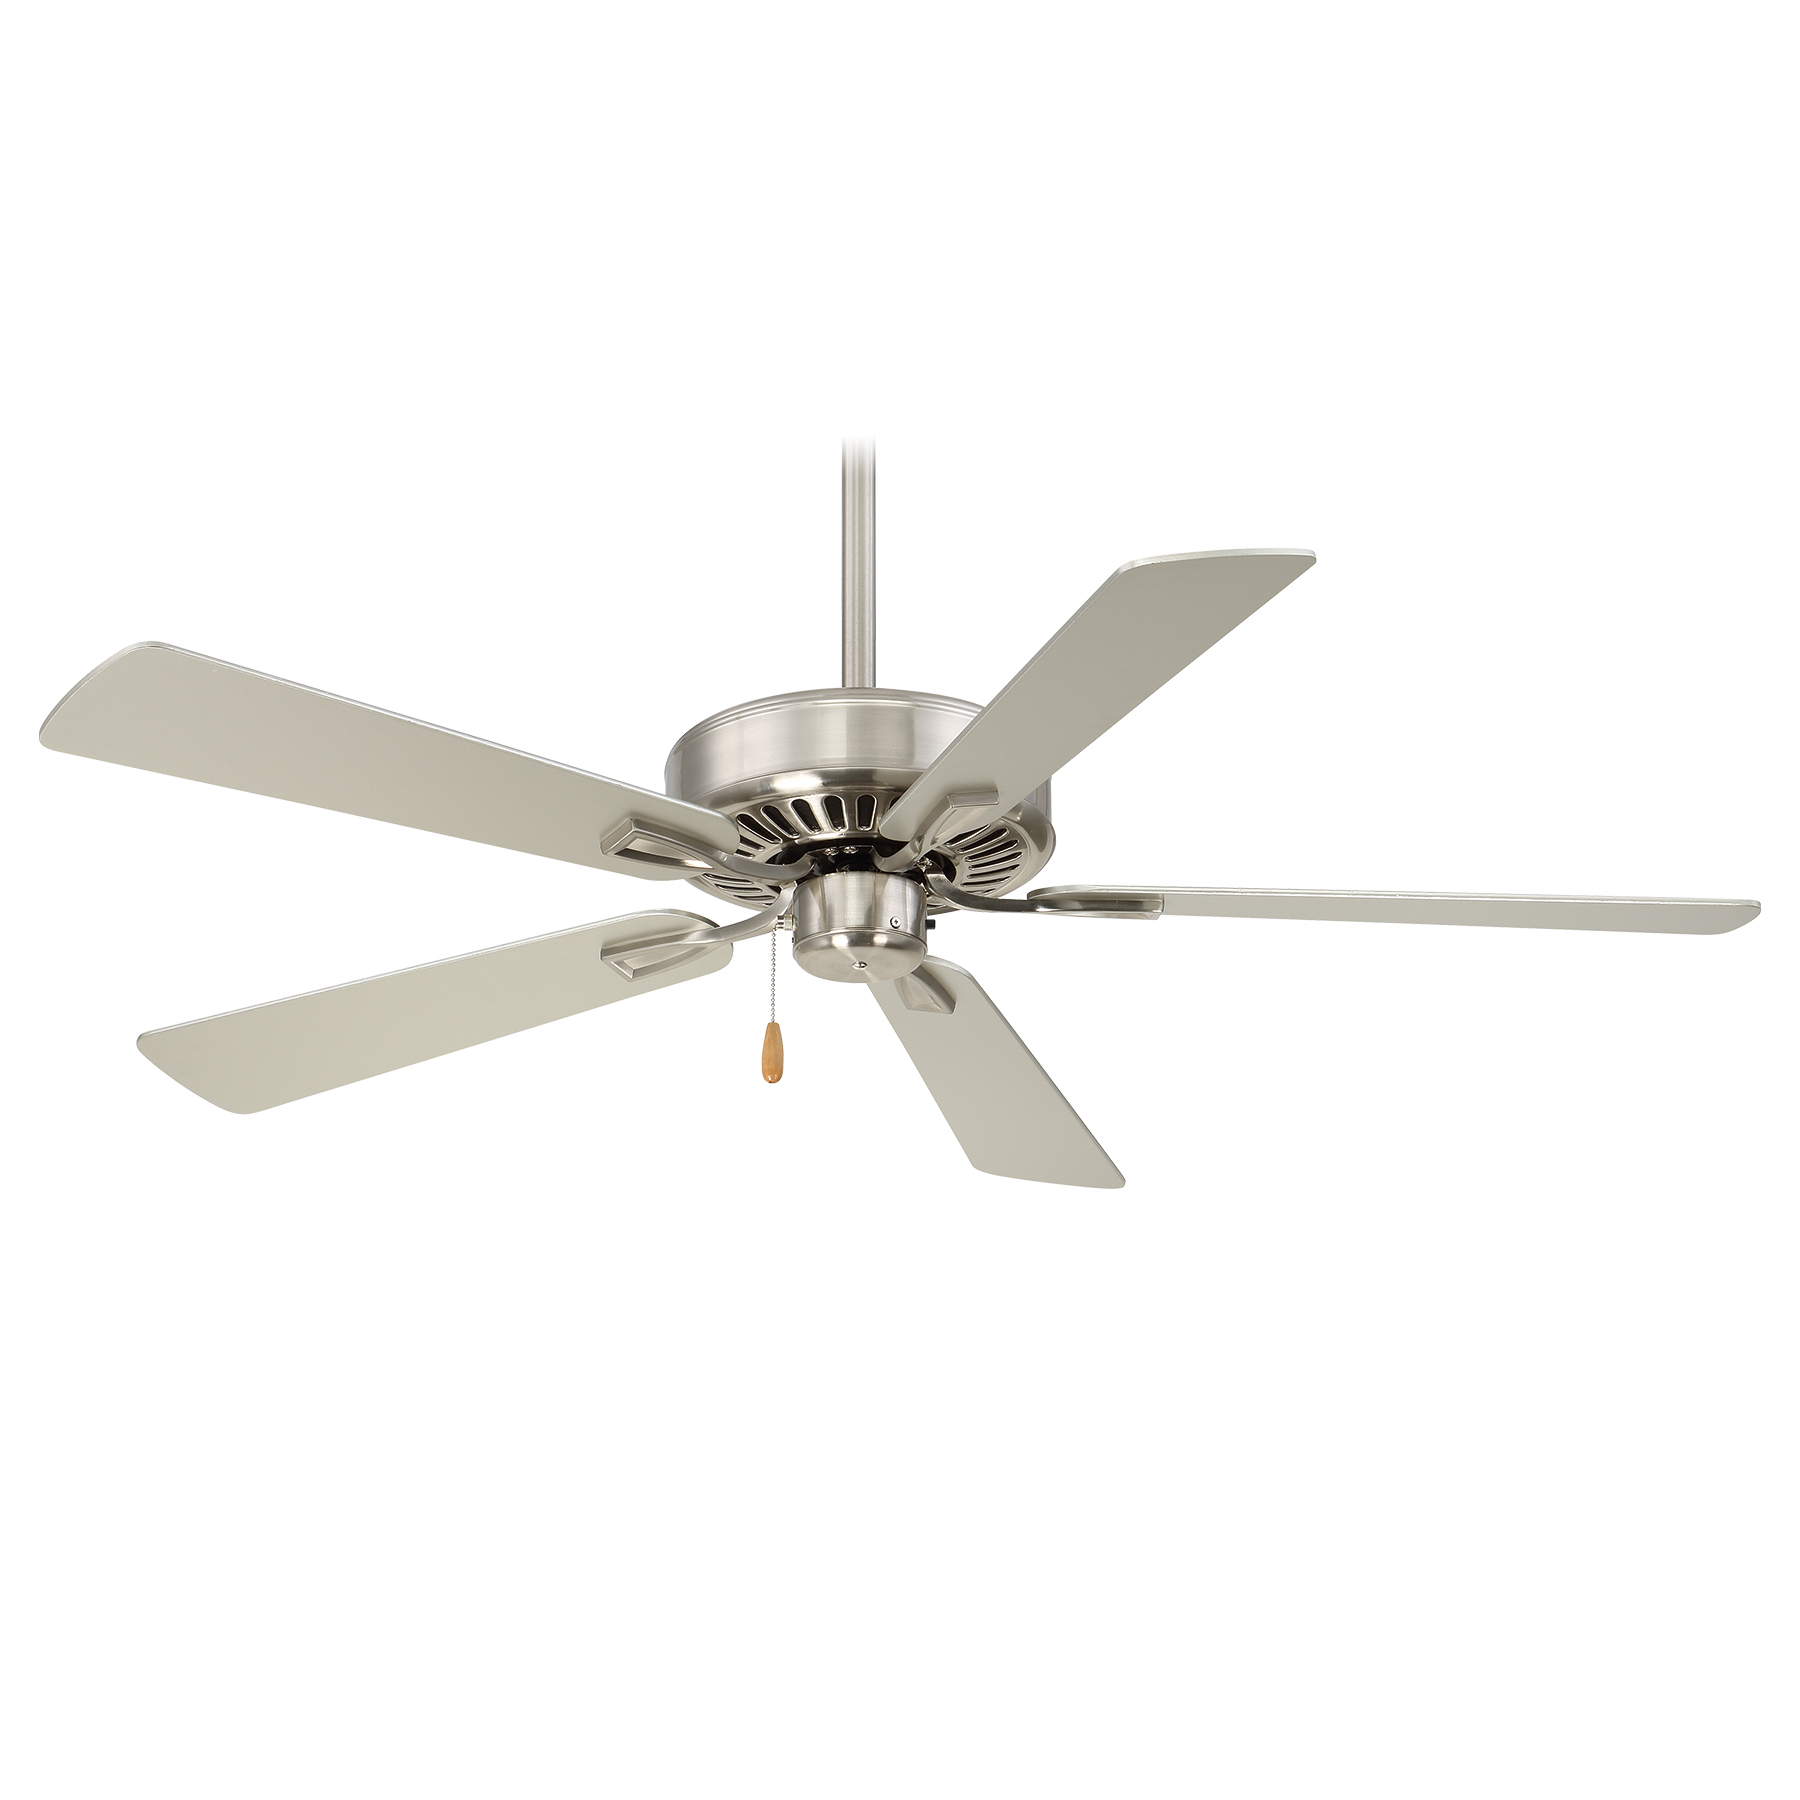 Minka Group® :: Brands :: Minka Aire® :: F556 Bn In Recent Mesa 5 Blade Ceiling Fans (View 17 of 20)